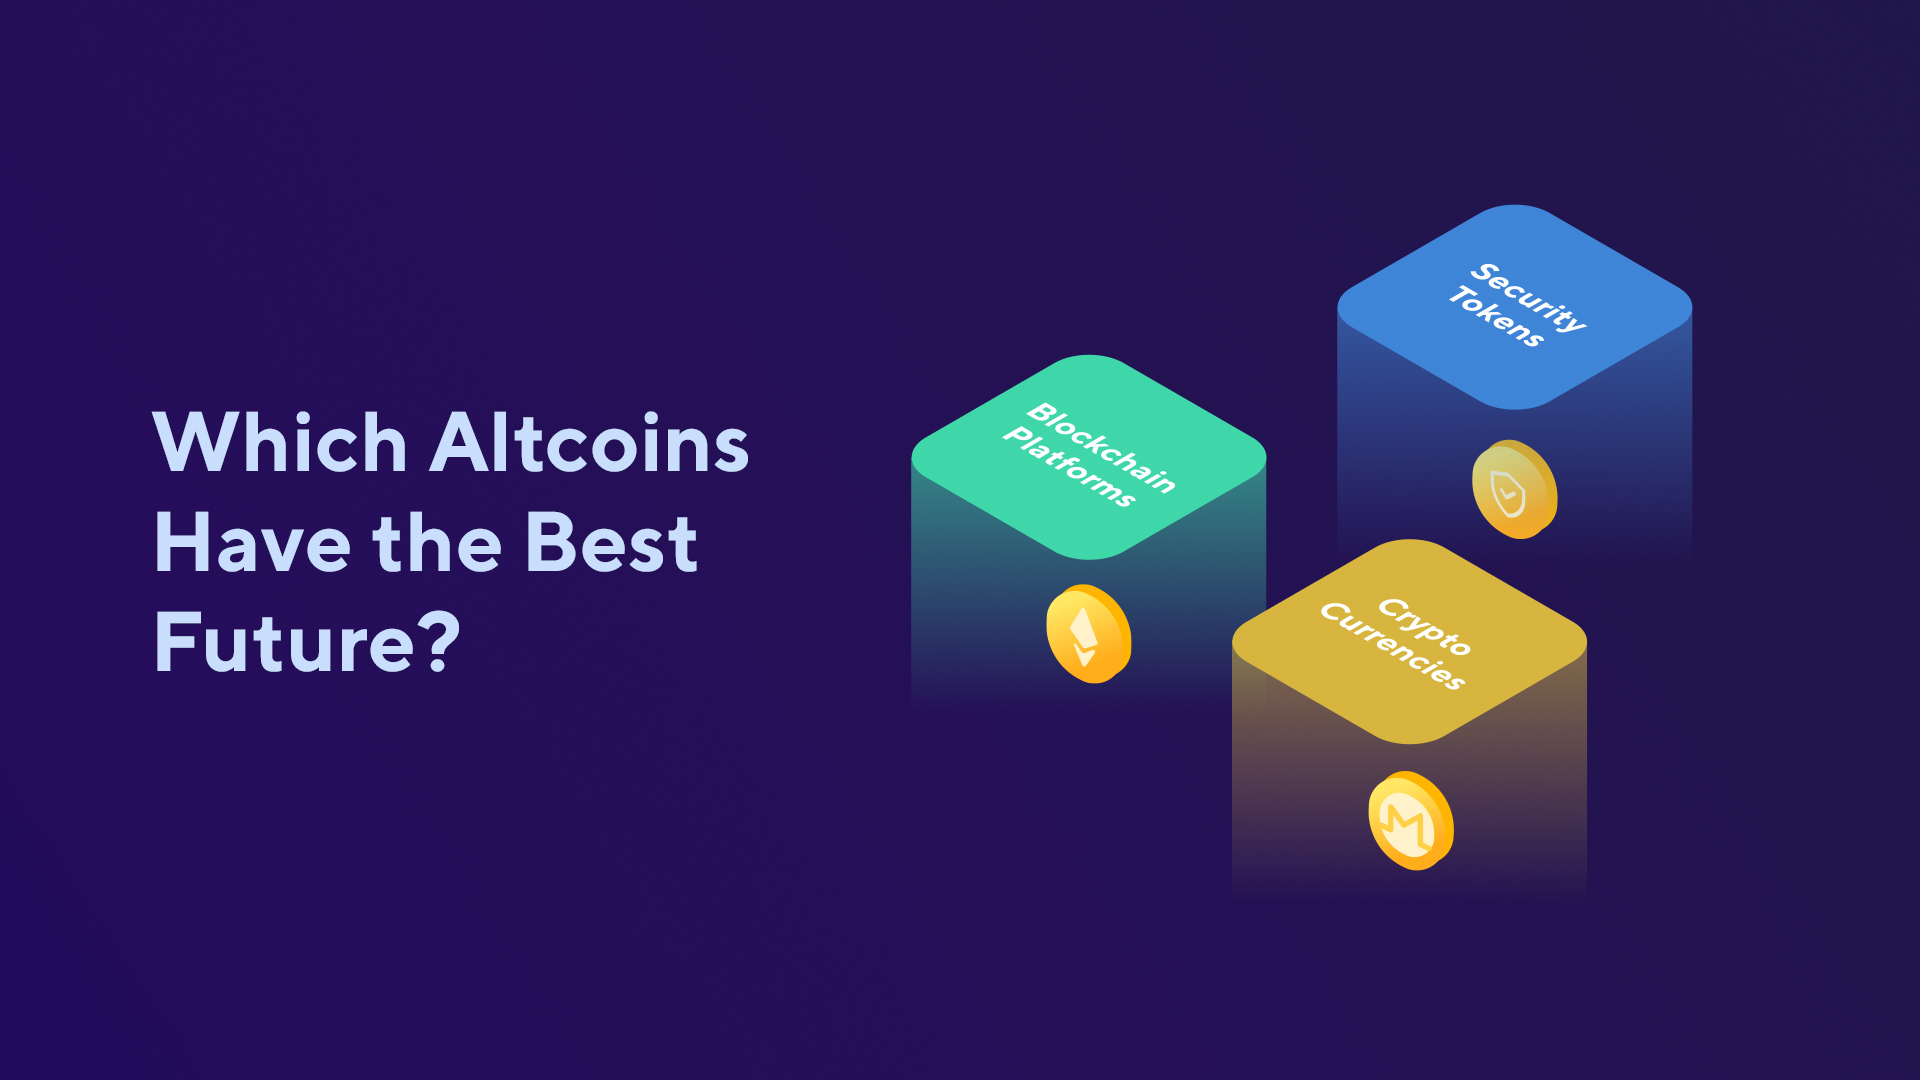 Which Altcoins Have the Best Future?